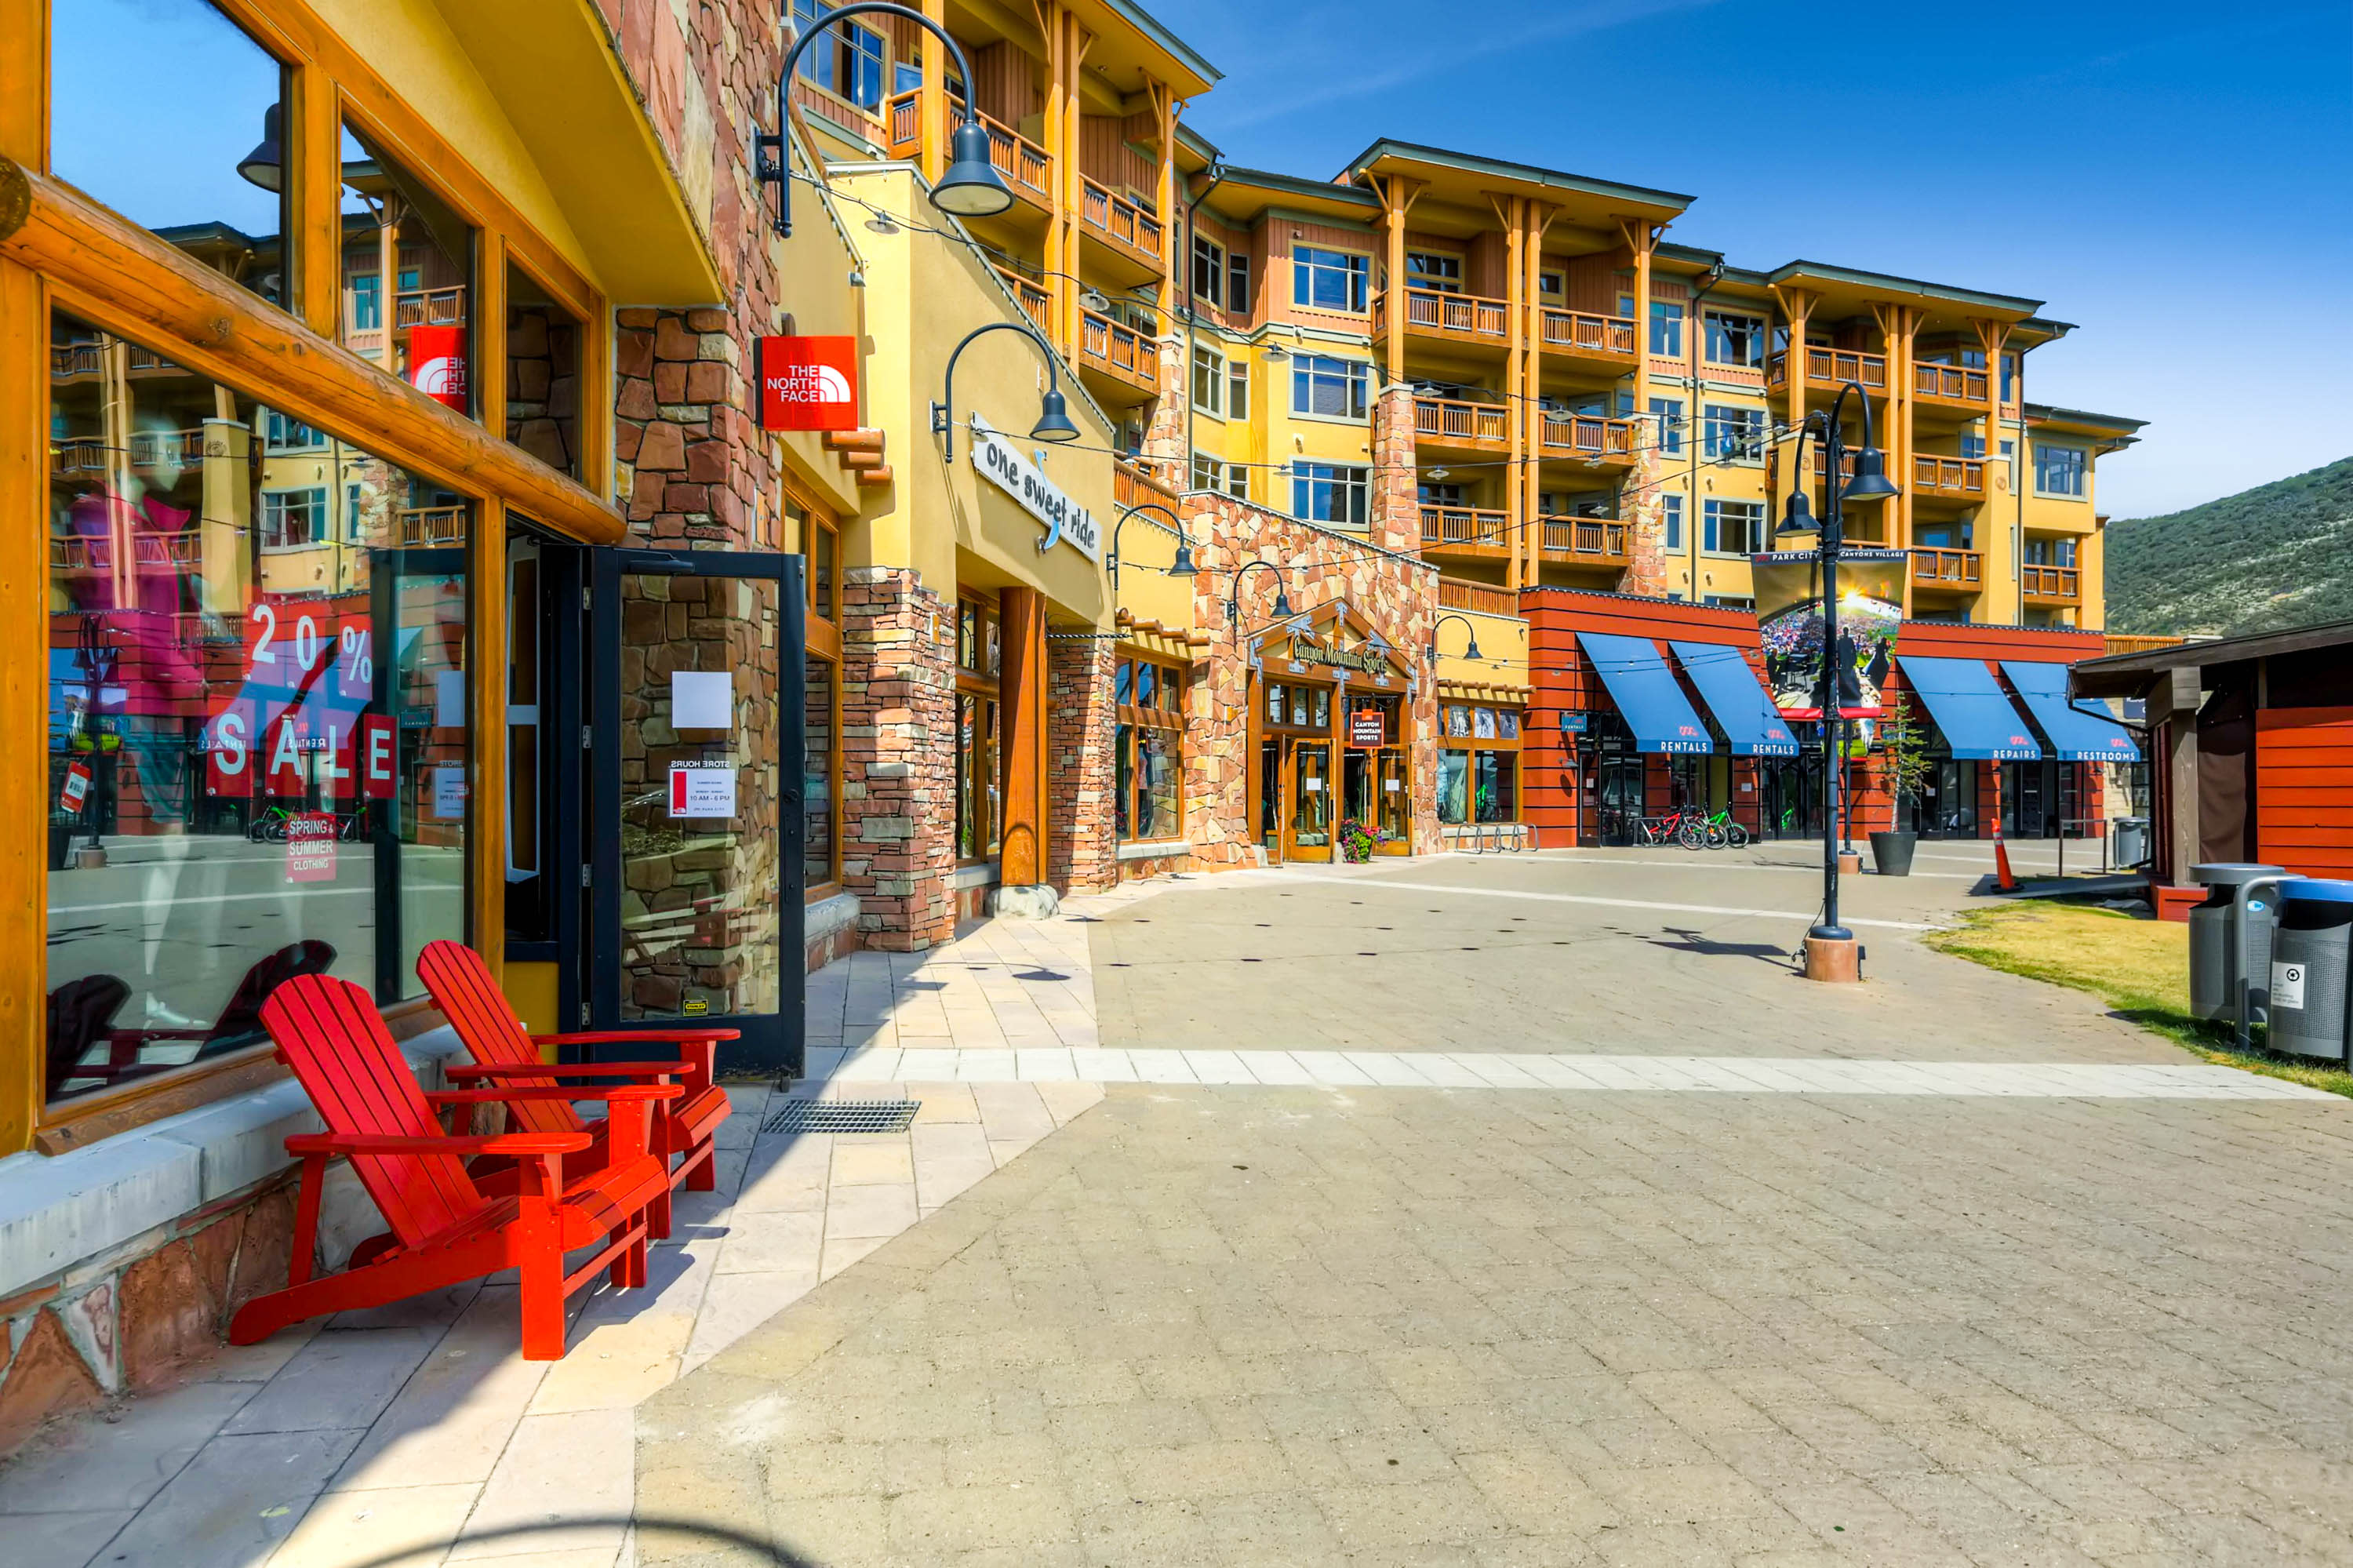 Ski and snowboard rentals are located right underneath the Lodge, along with multiple retail shops.